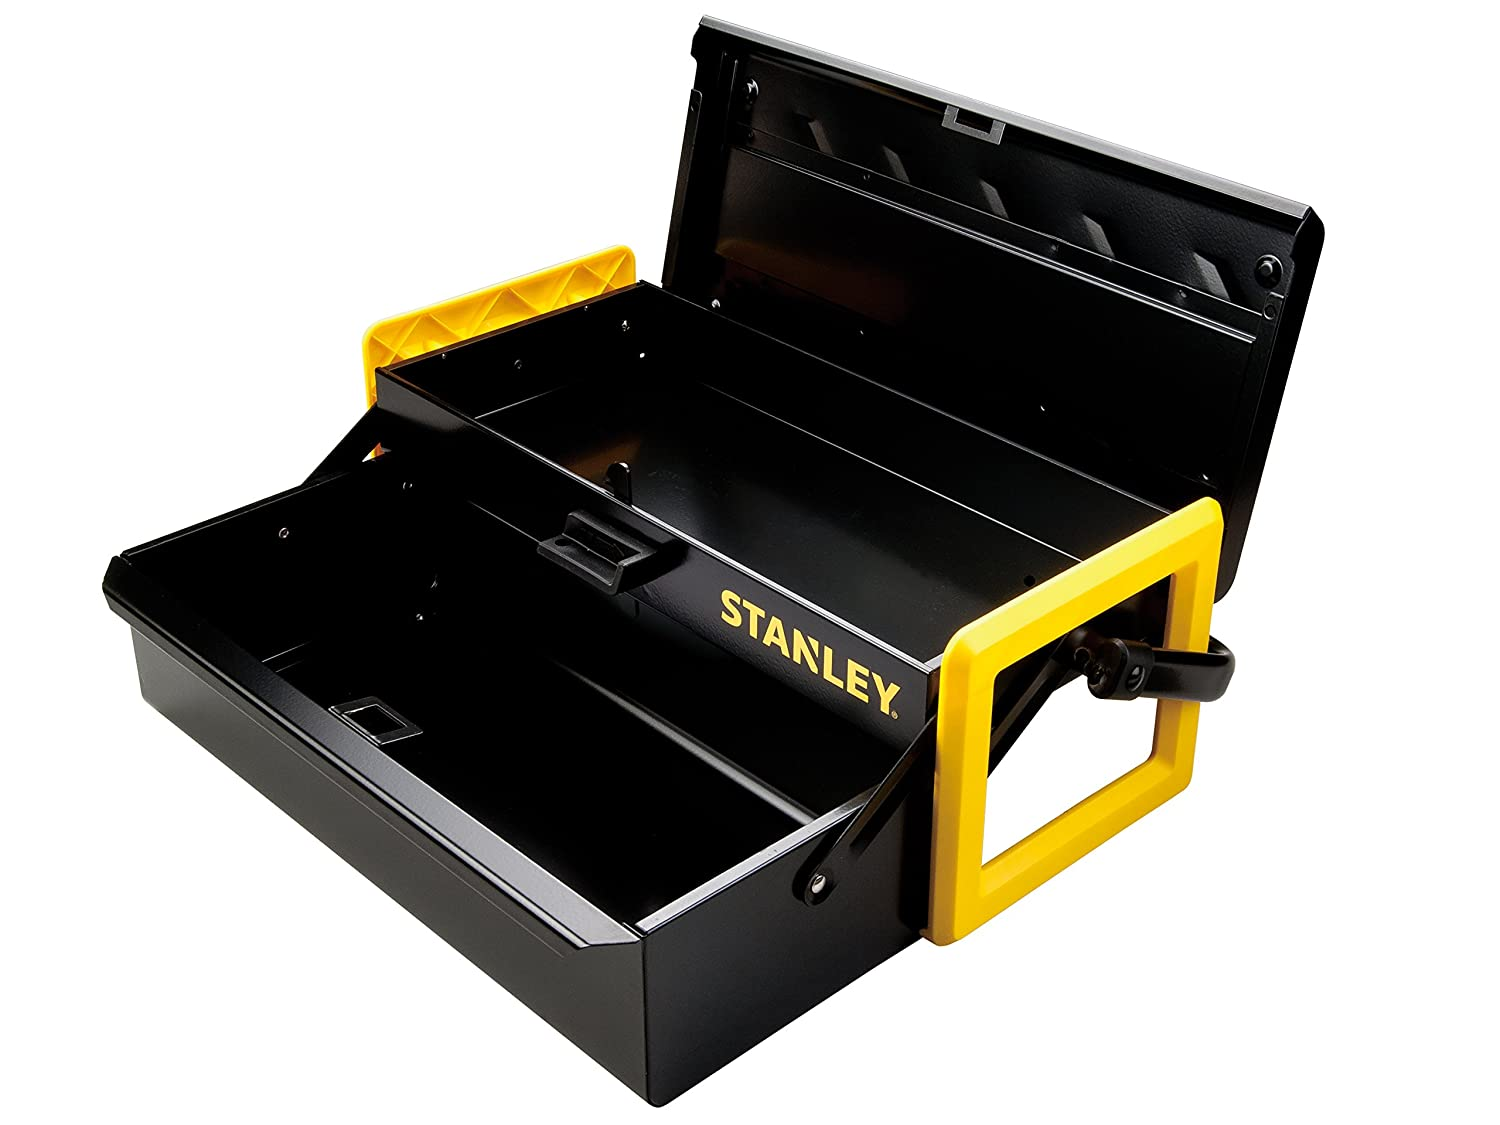 Stanley Tools Metal Cantilever Toolbox with Central Lock and Metal Handle | 16  - - Amazon.com  sc 1 st  Amazon.com & Stanley Tools Metal Cantilever Toolbox with Central Lock and Metal ...